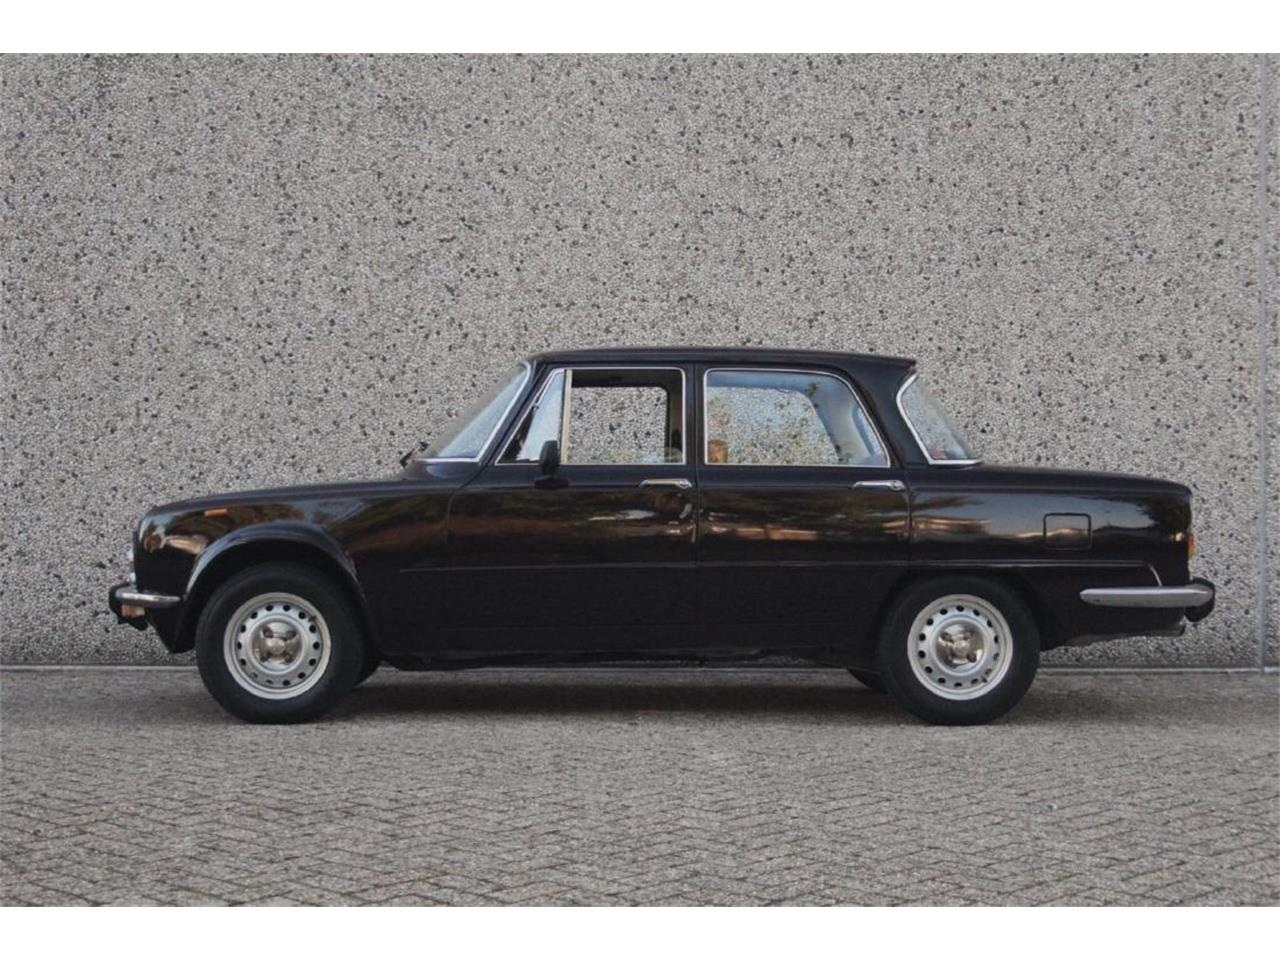 Large Picture of 1976 Giulia Super Nuova Super 1300 located in New York Auction Vehicle Offered by Live Auctioneers - P13P